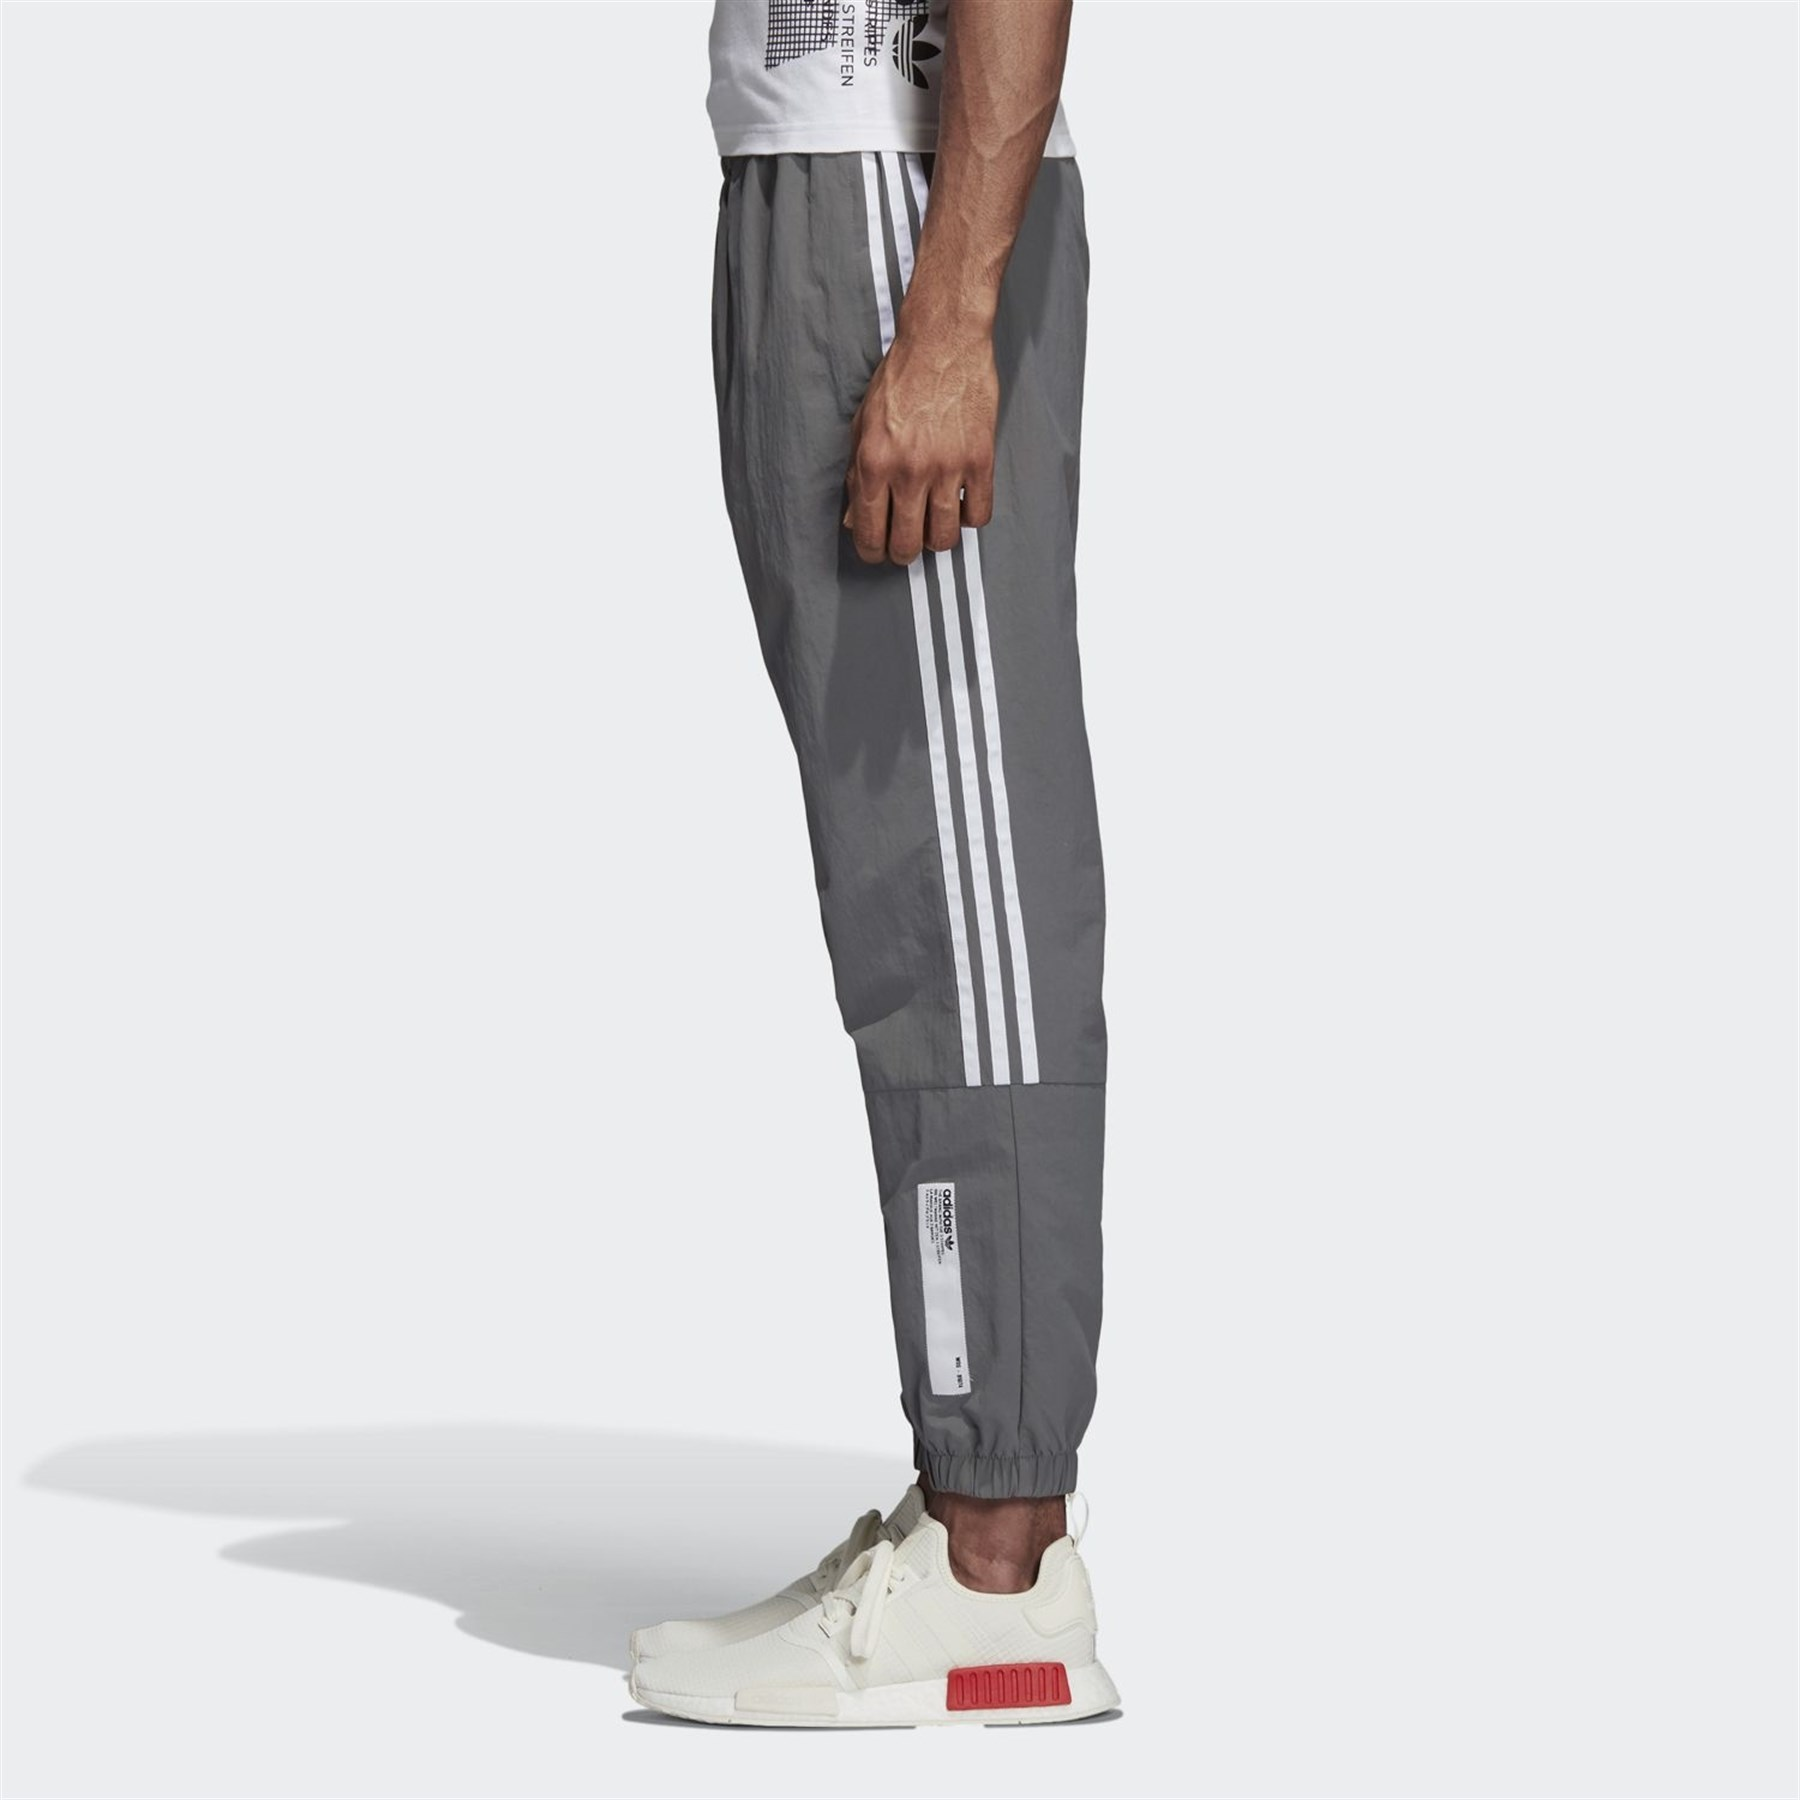 Dh2291 Nmd Track Pant